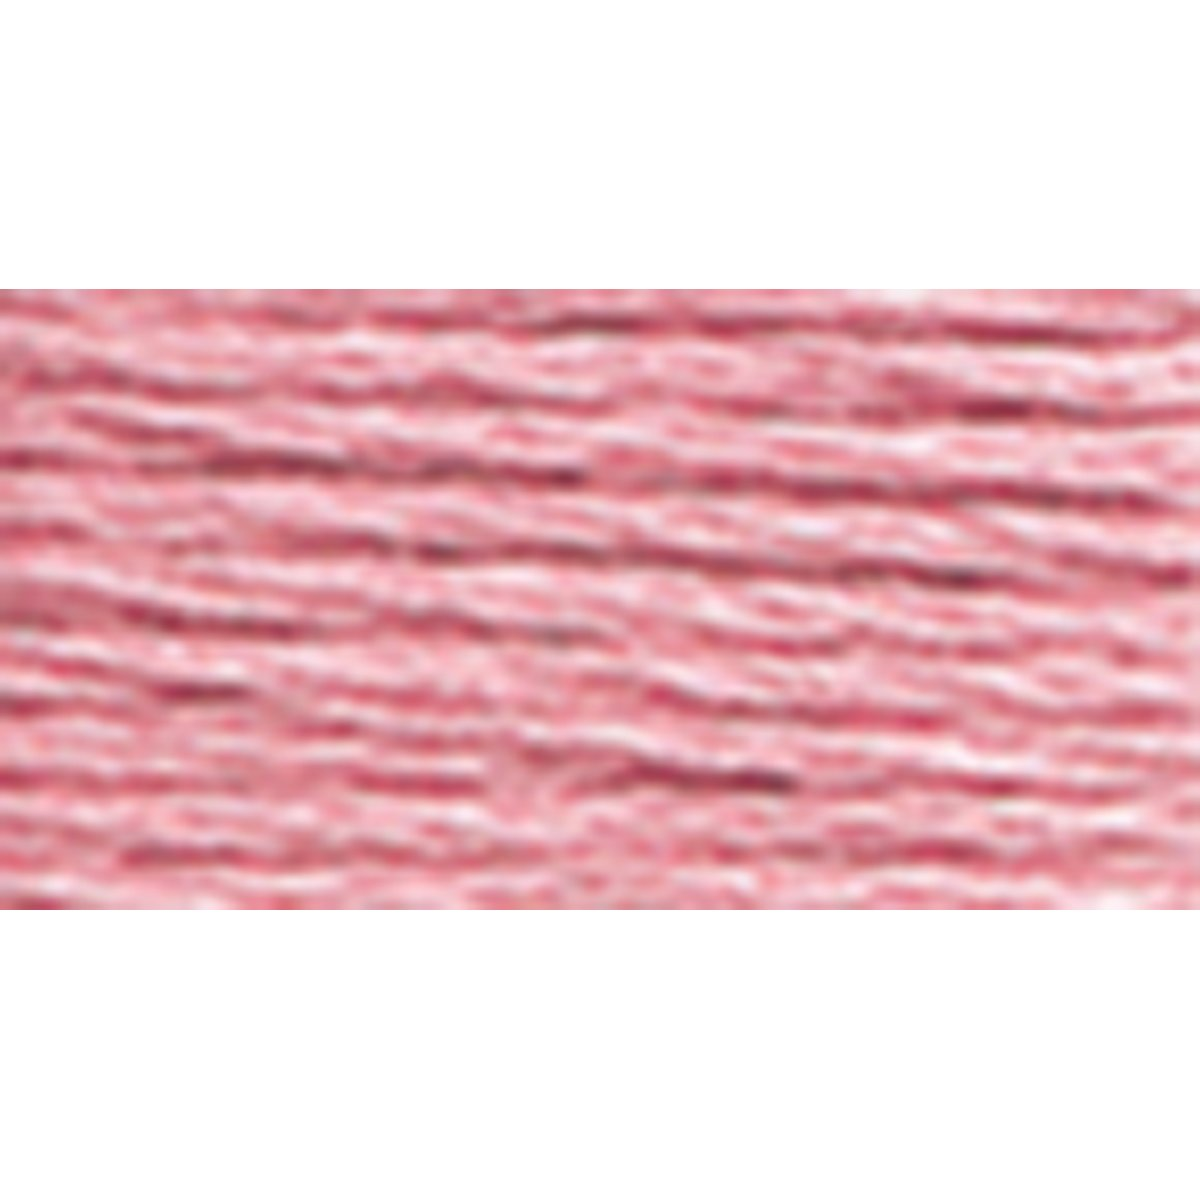 DMC 117-3354 Mouline Stranded Cotton Six Strand Embroidery Floss Thread, Light Dusty Rose, 8.7-Yard Notions - In Network